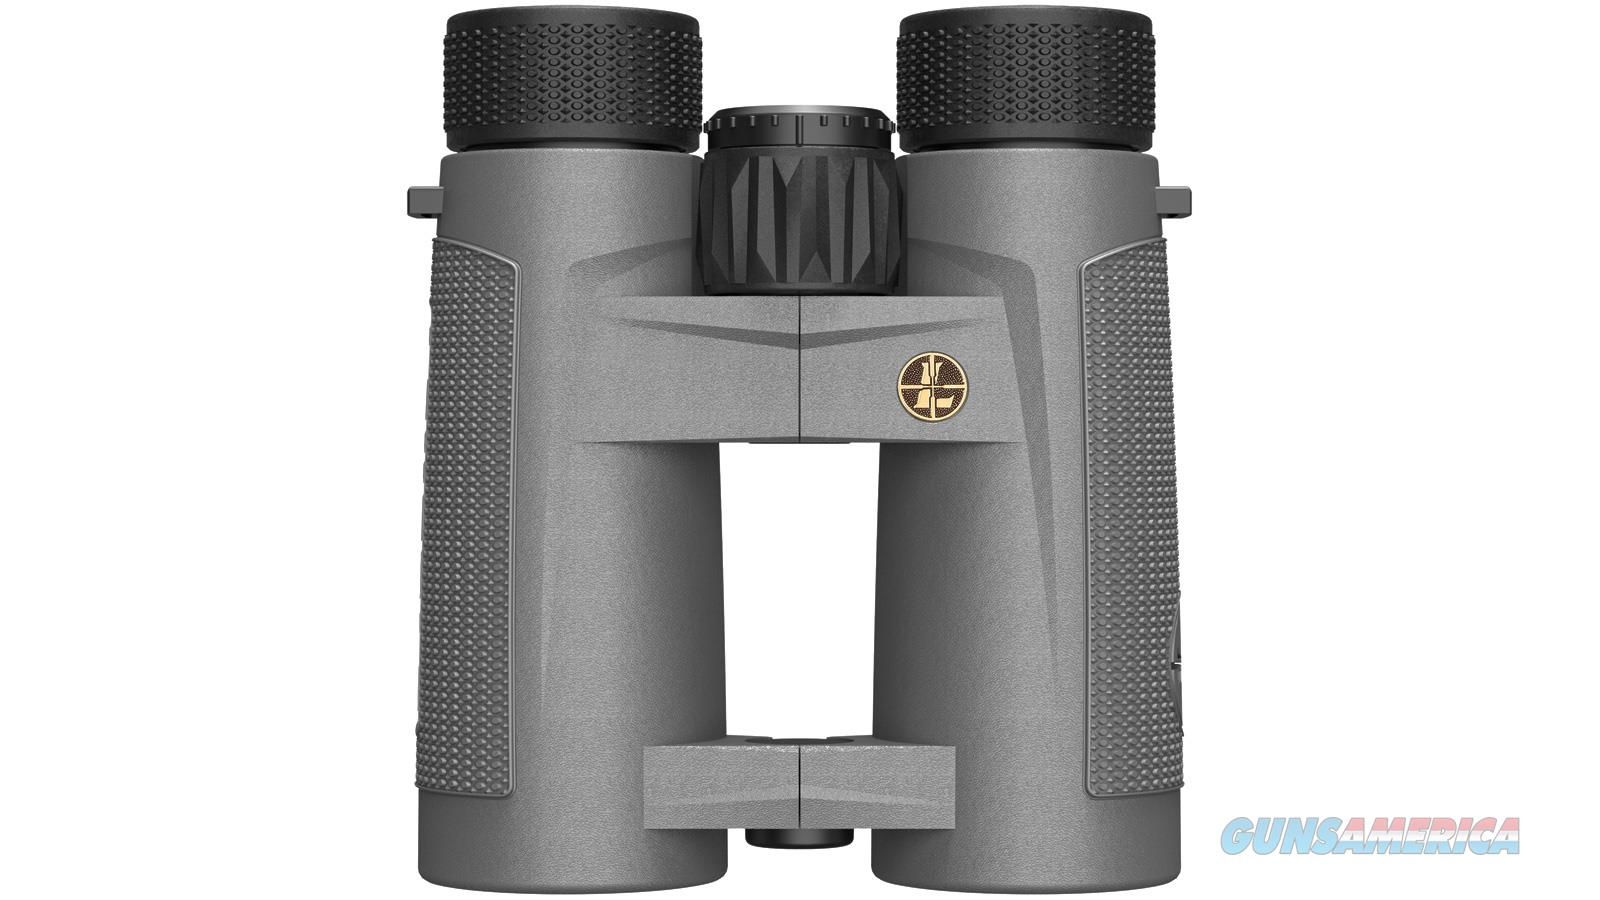 Leupold Bx-4 Pro Guide Hd 8X42 S/Gr 172662  Non-Guns > Scopes/Mounts/Rings & Optics > Non-Scope Optics > Binoculars